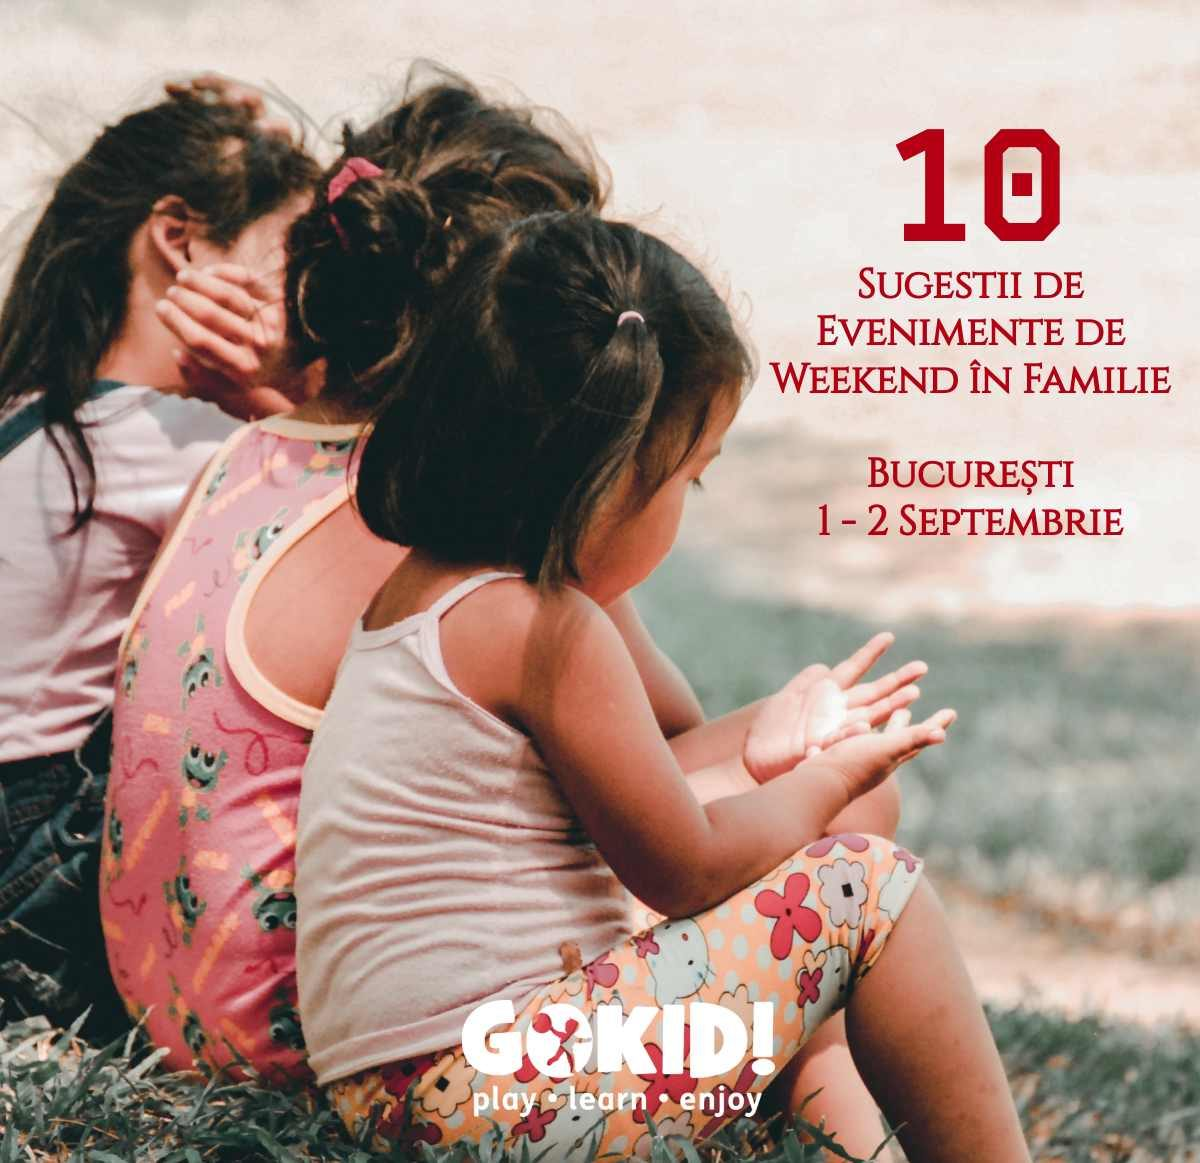 10 Sugestii de Evenimente de Weekend in Familie | Bucuresti, 1-2 Septembrie